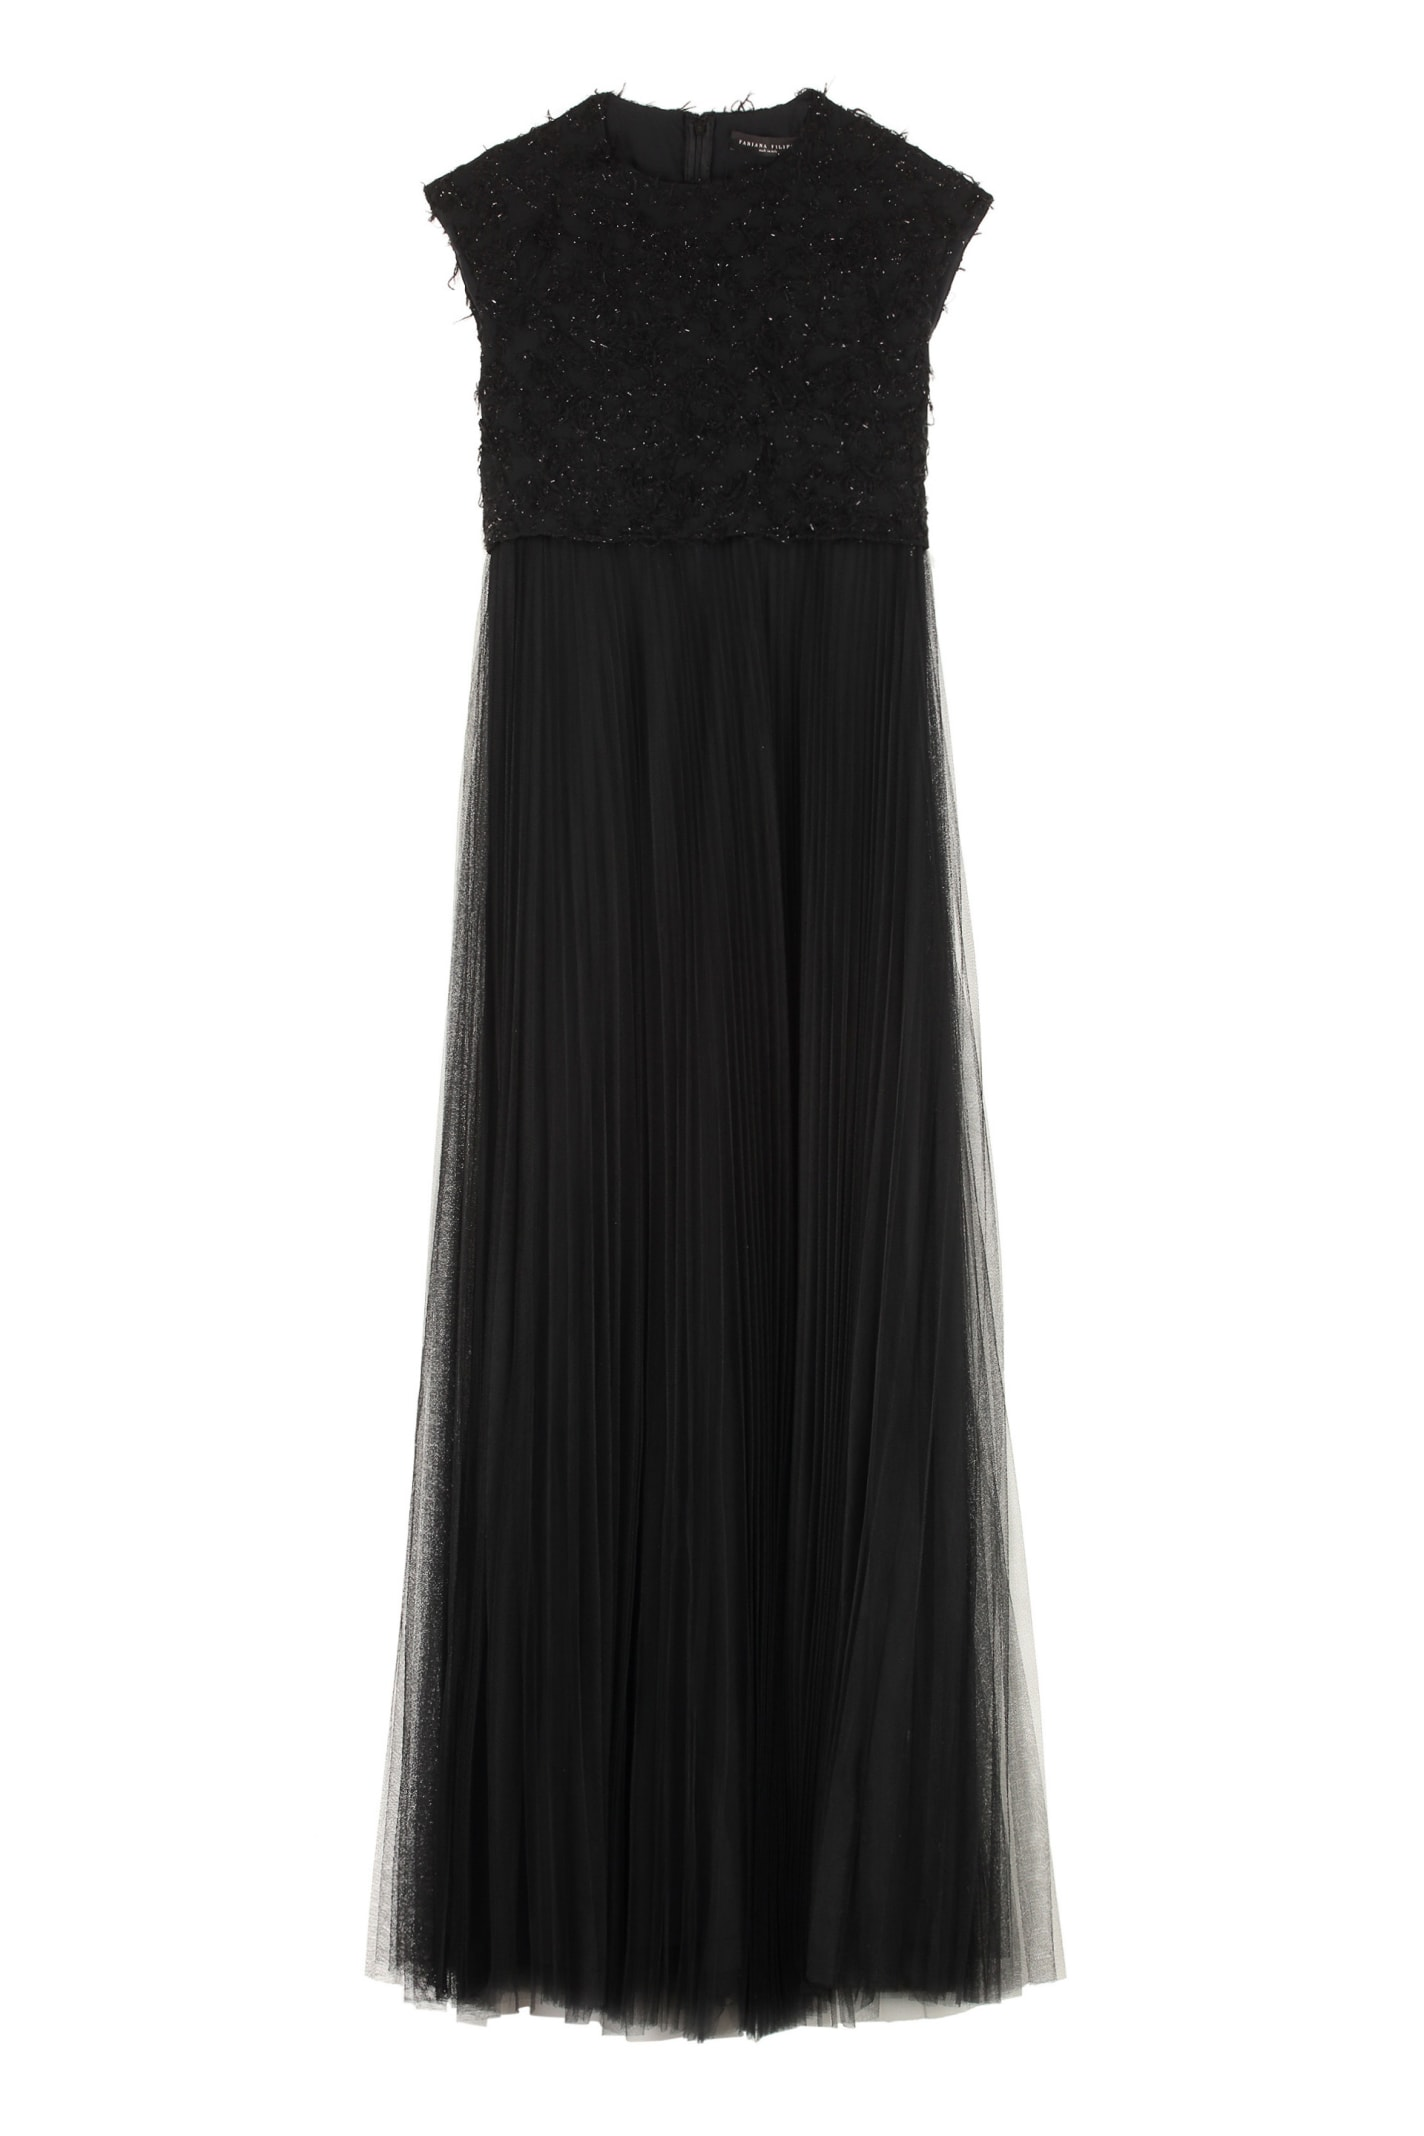 Fabiana Filippi Tulle Skirt Long Dress